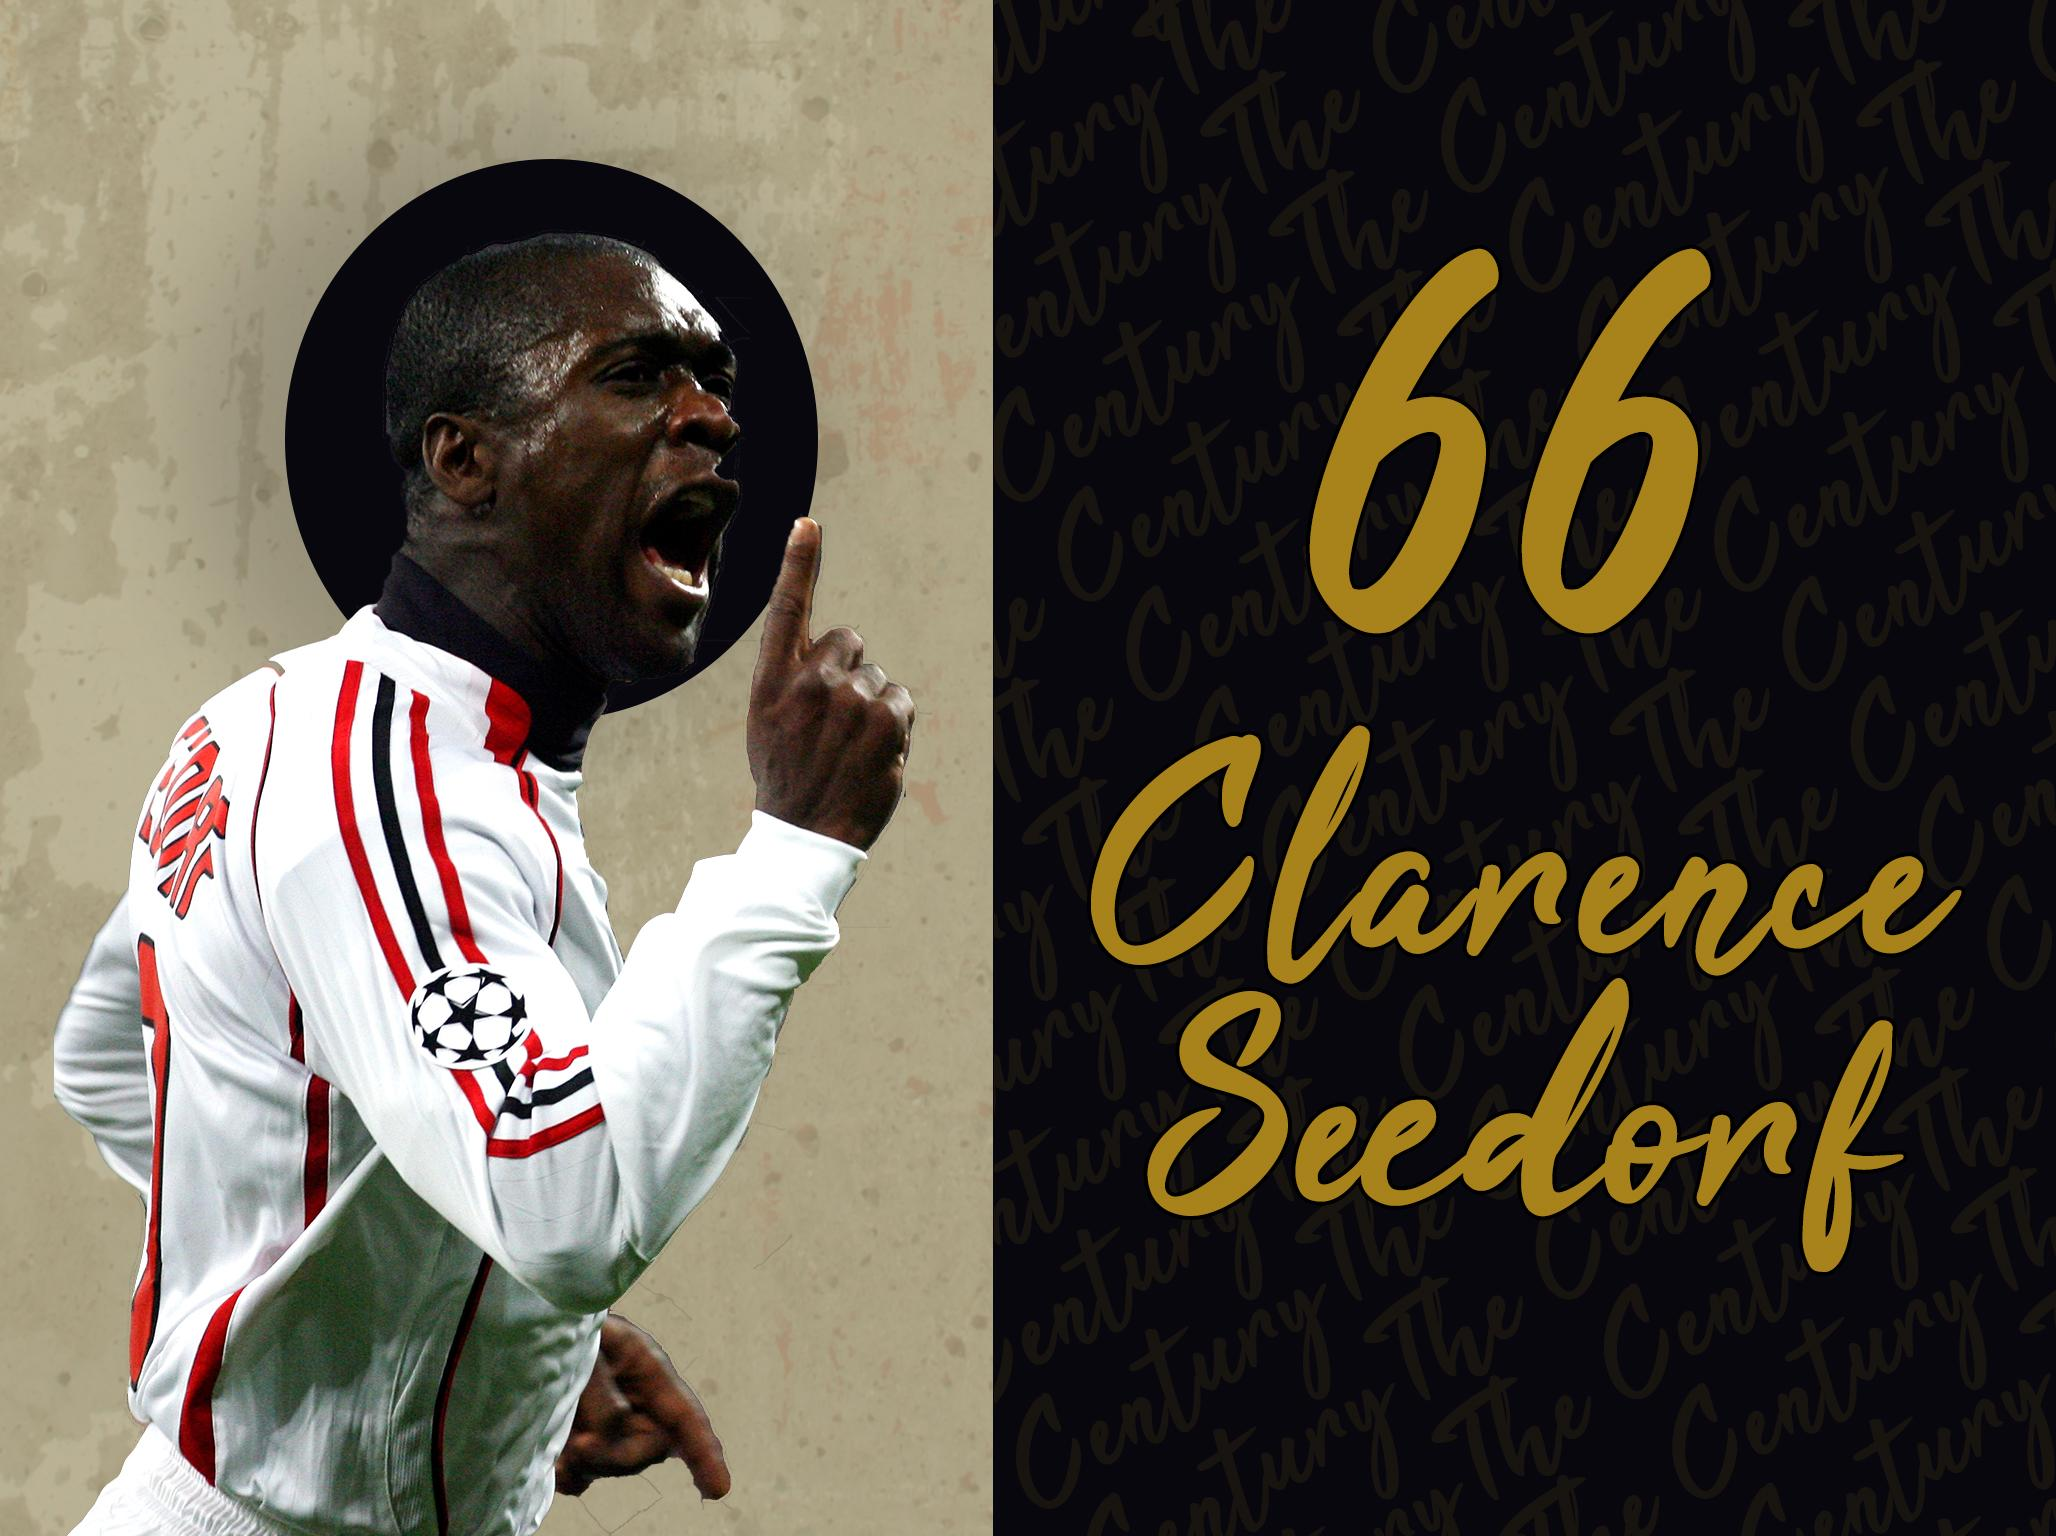 The immortal Clarence Seedorf and an insatiable desire for success